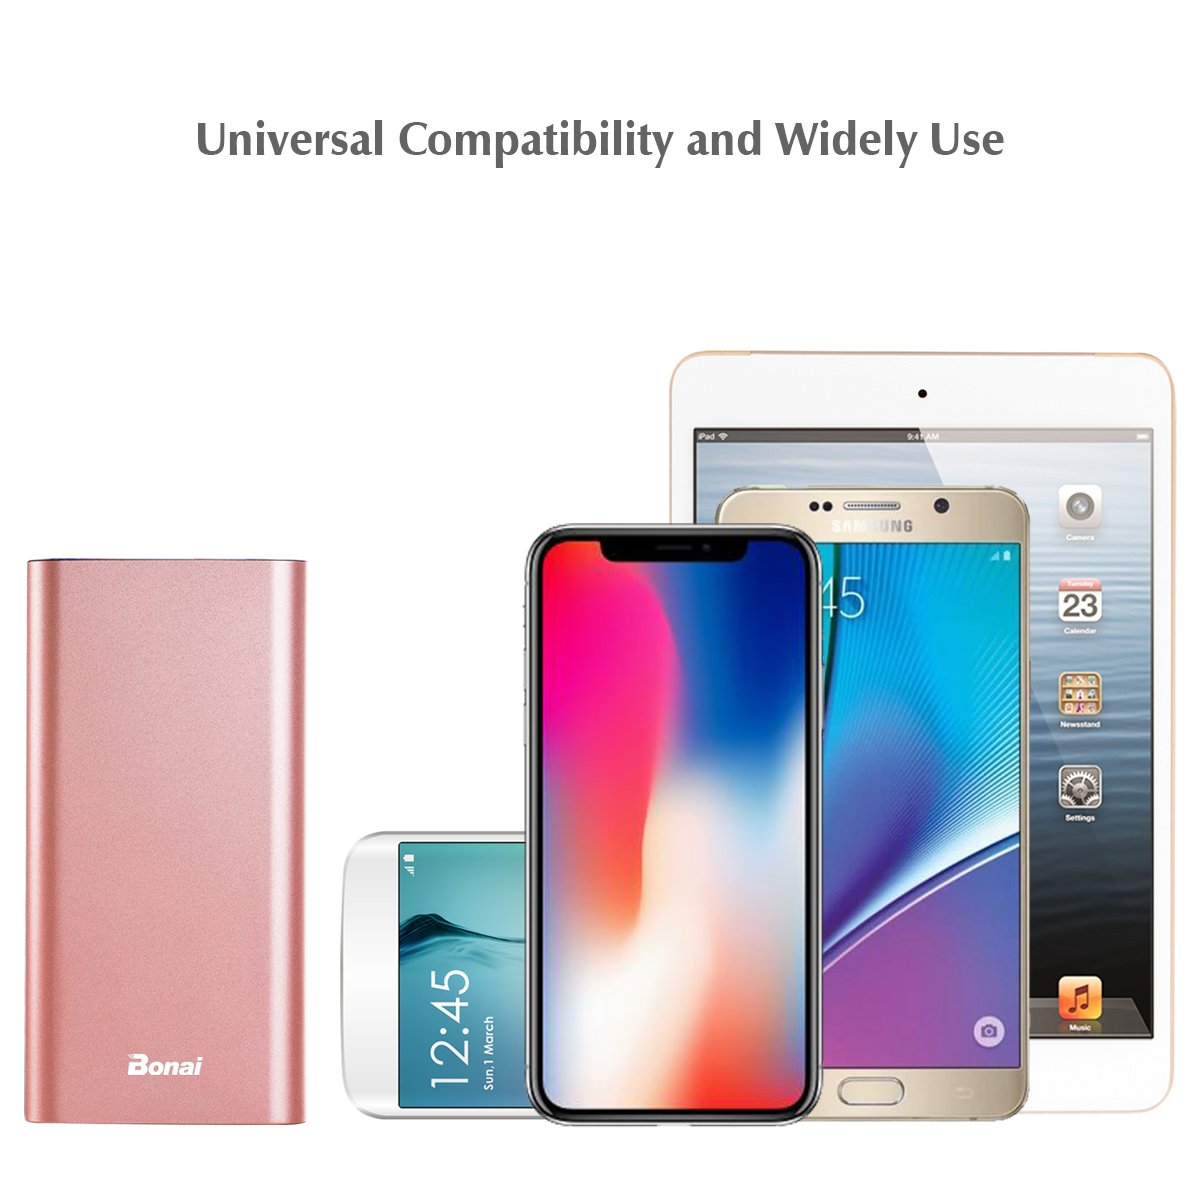 iPhone Charger, Bonai Portable Charger 20000mAh, Aluminum Polymer External Battery Pack 4.0A Max Lightning & Mirco Input 4-Port Output for iPhone 7 7 plus 6s 8 Galaxy S8 S7 Note 8 & Tablet -Rose Gold by Bonai (Image #8)